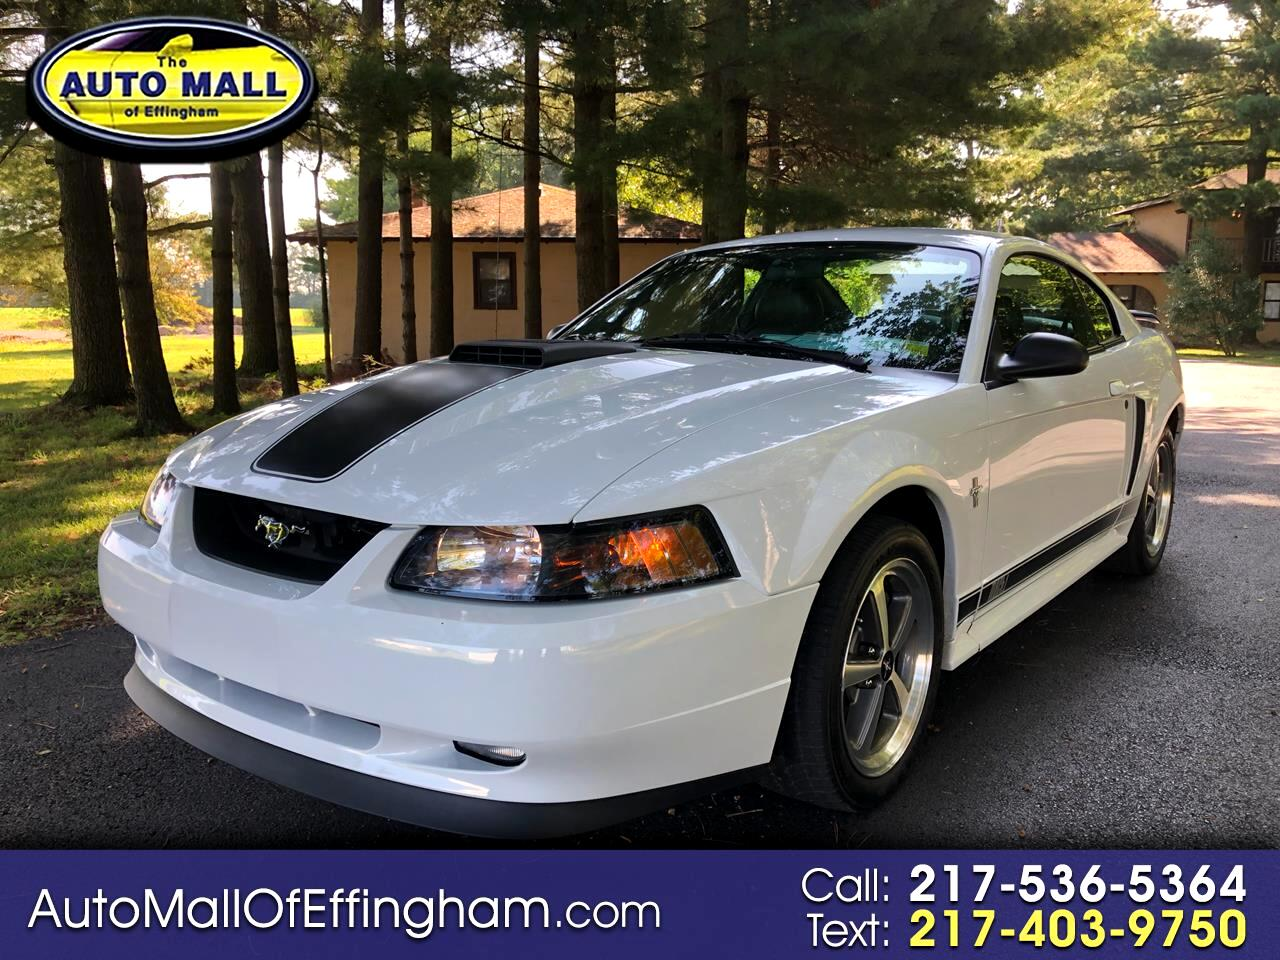 Ford Mustang 2dr Cpe Premium Mach 1 2003